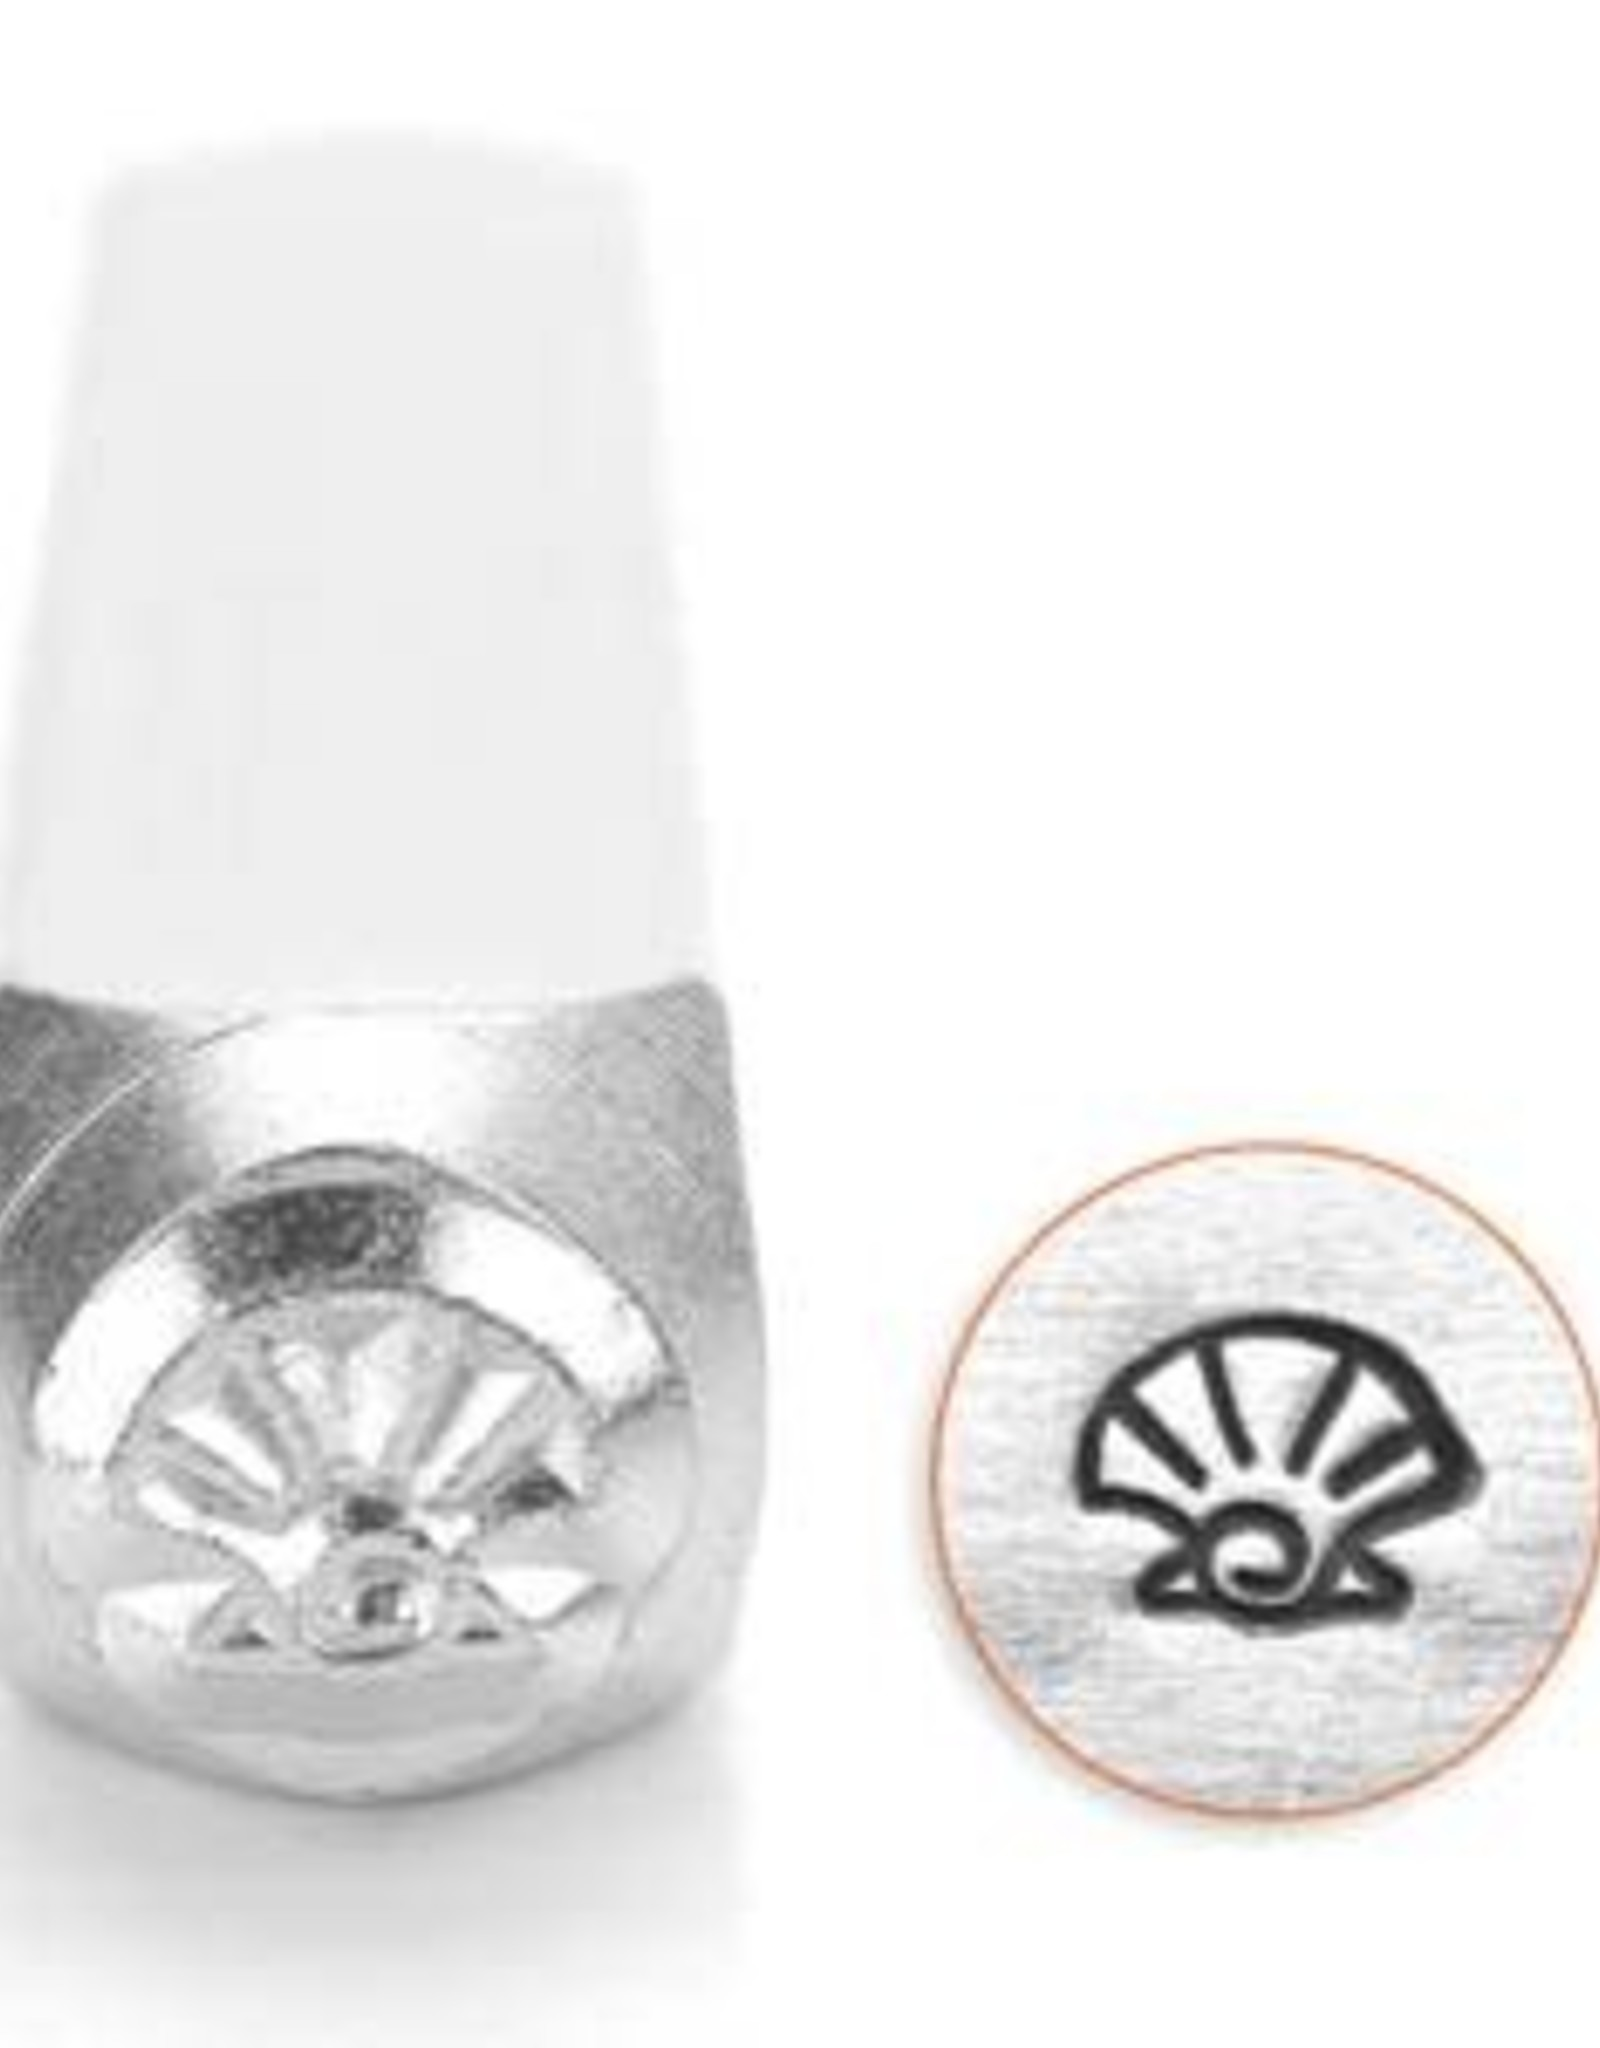 6mm Sea Shell Stamp